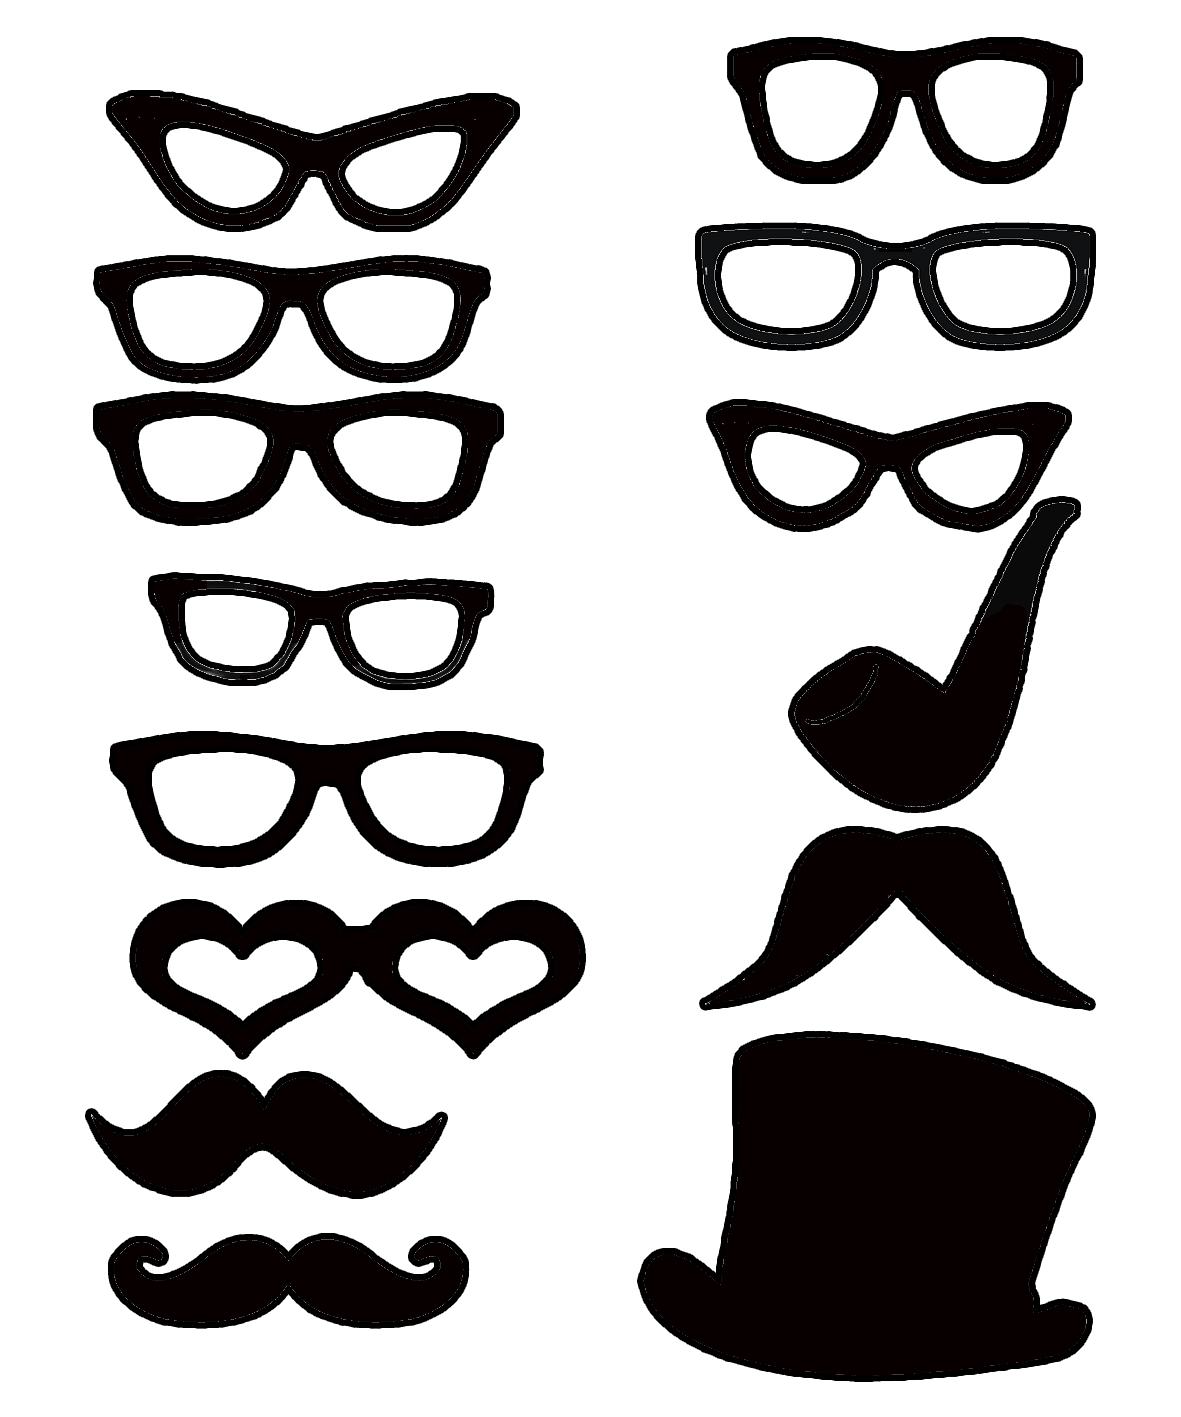 Micro glasses , moustache and hat